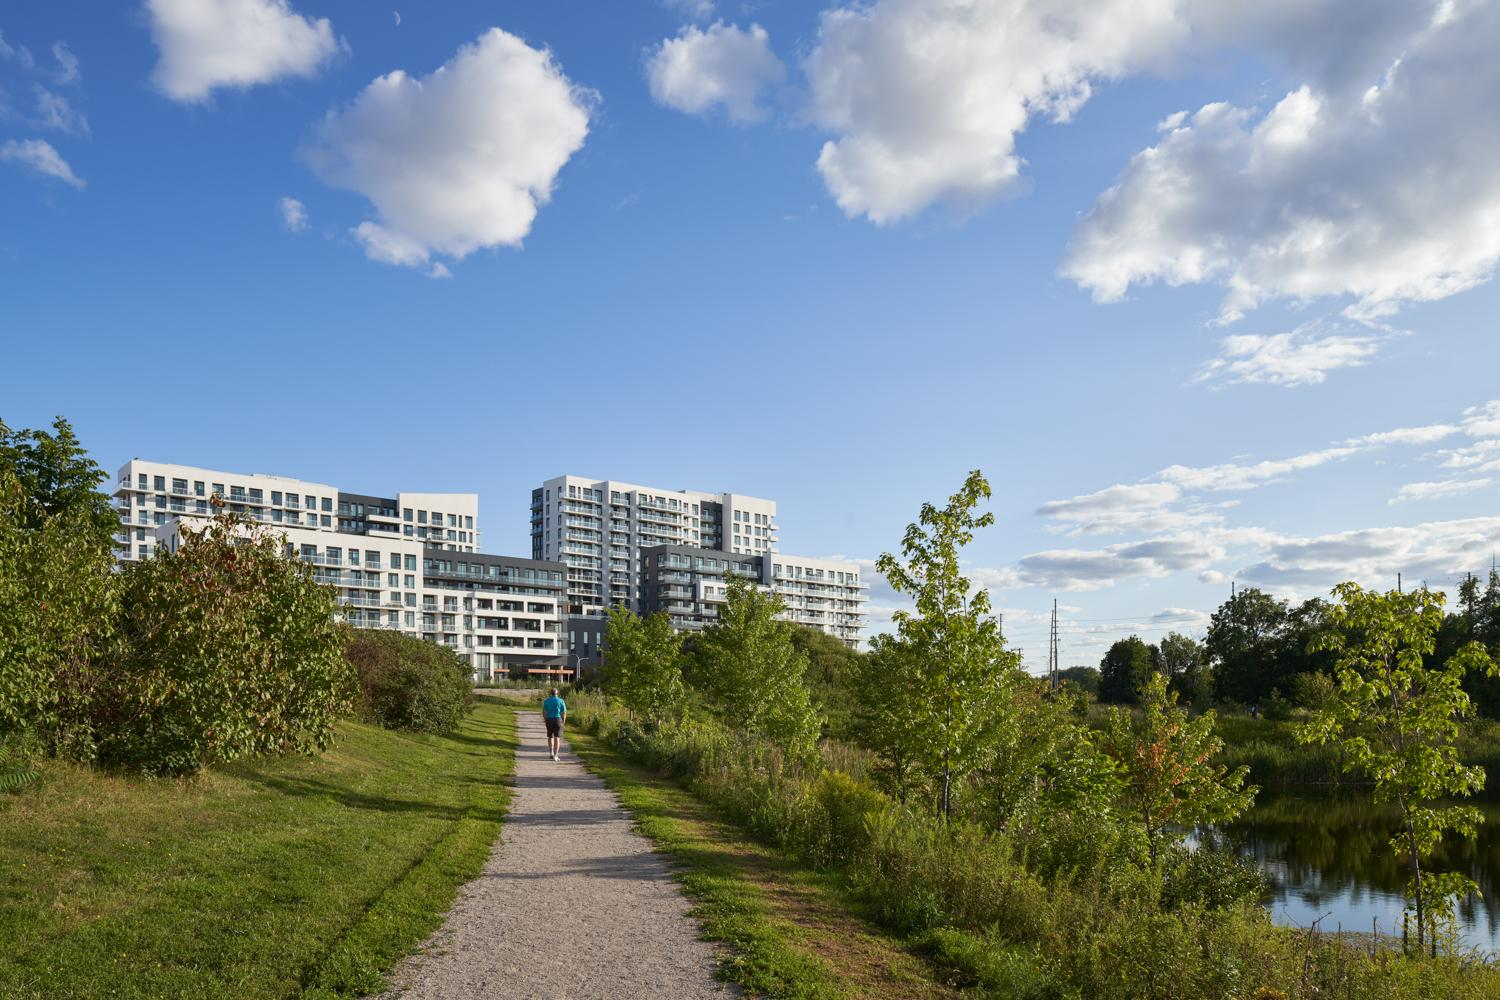 York Condos visible in the background as a man jogs along a path in a grassy nature-filled park